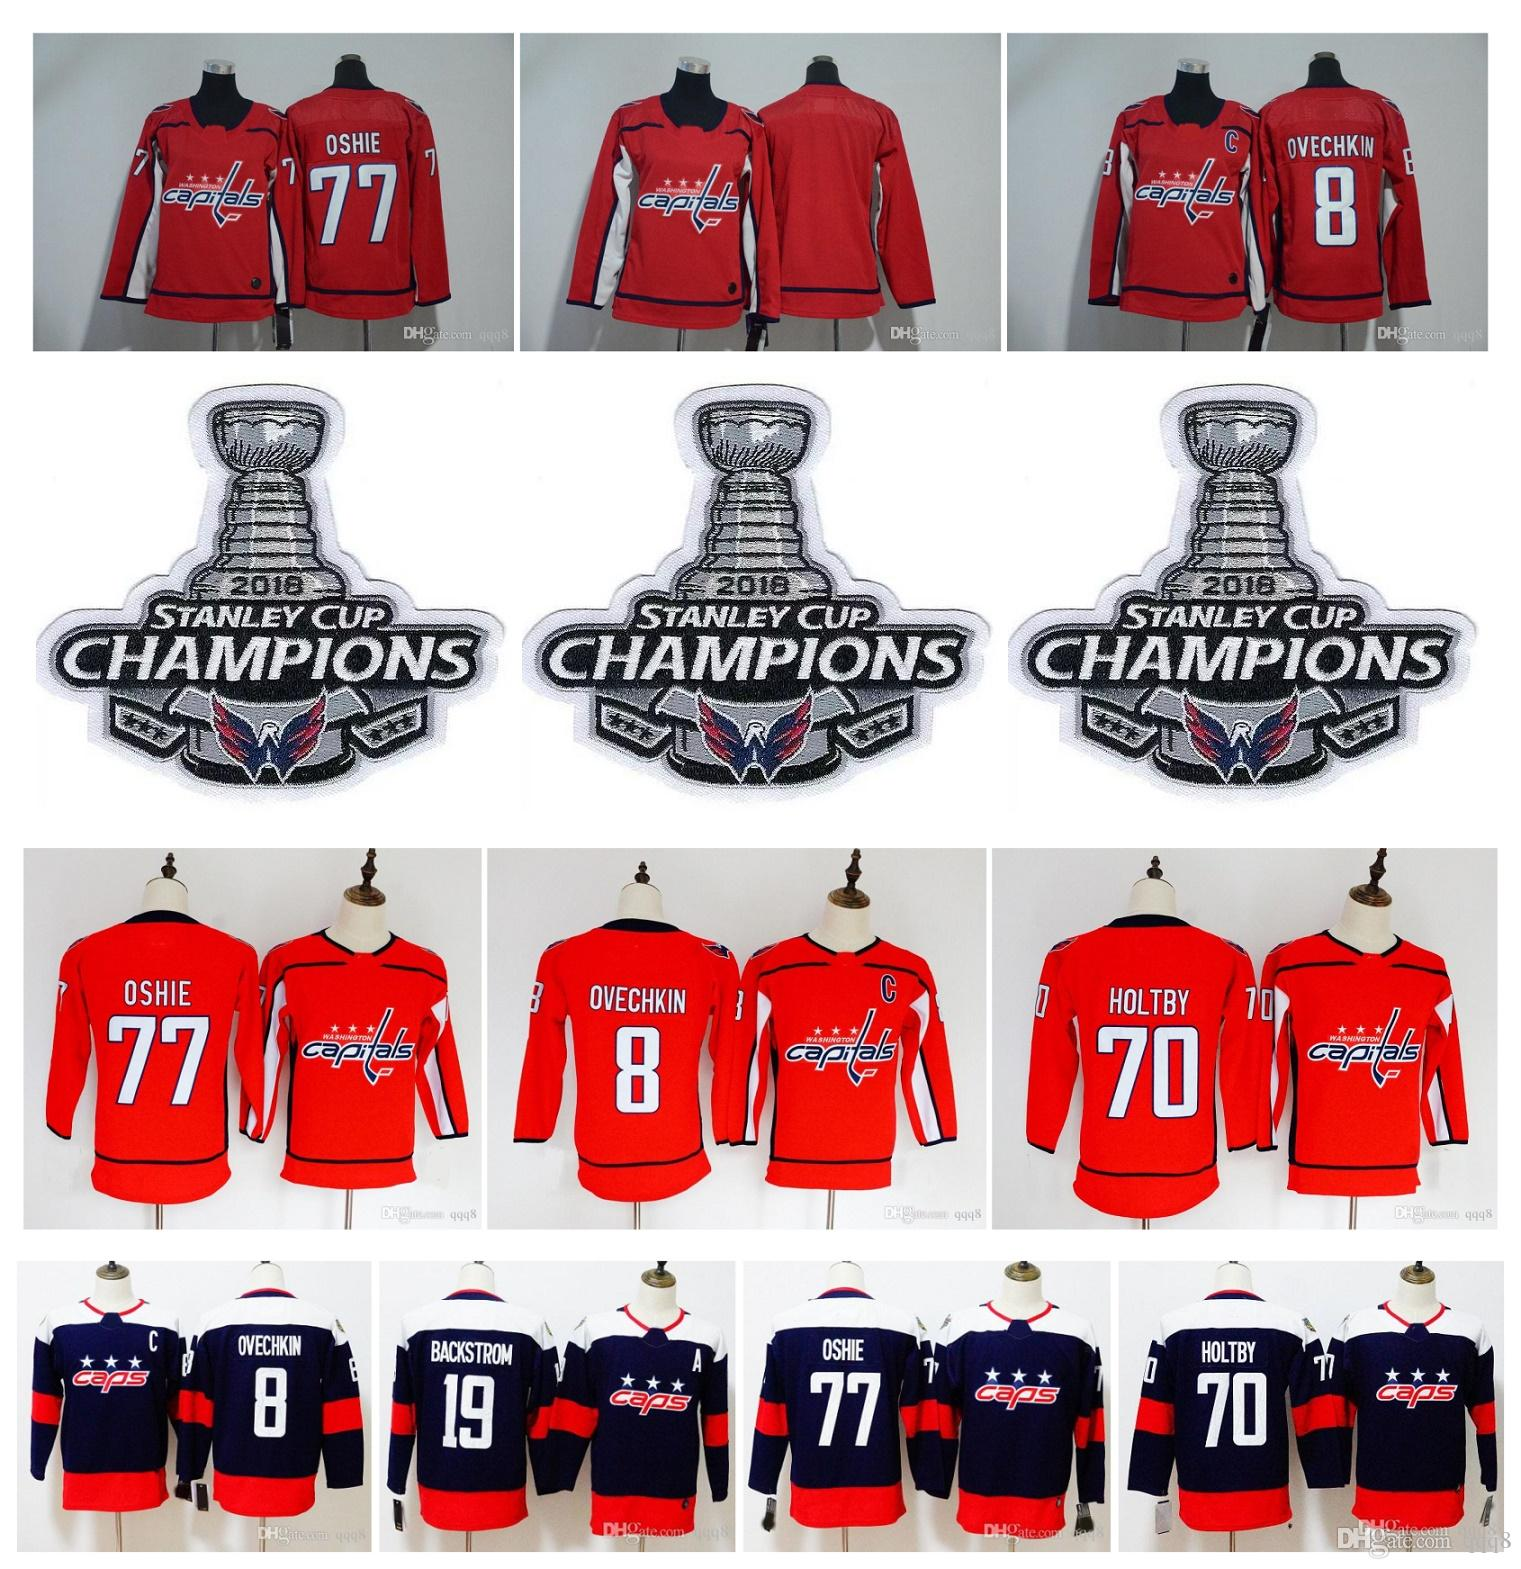 f96bee2f0 2018 Stanley Cup Champion Patch Kids Youth Washington Capitals Jersey Alex  Ovechkin TJ Oshie Braden Holtby Backstrom Wome Hockey Jersey UK 2019 From  Qqq8